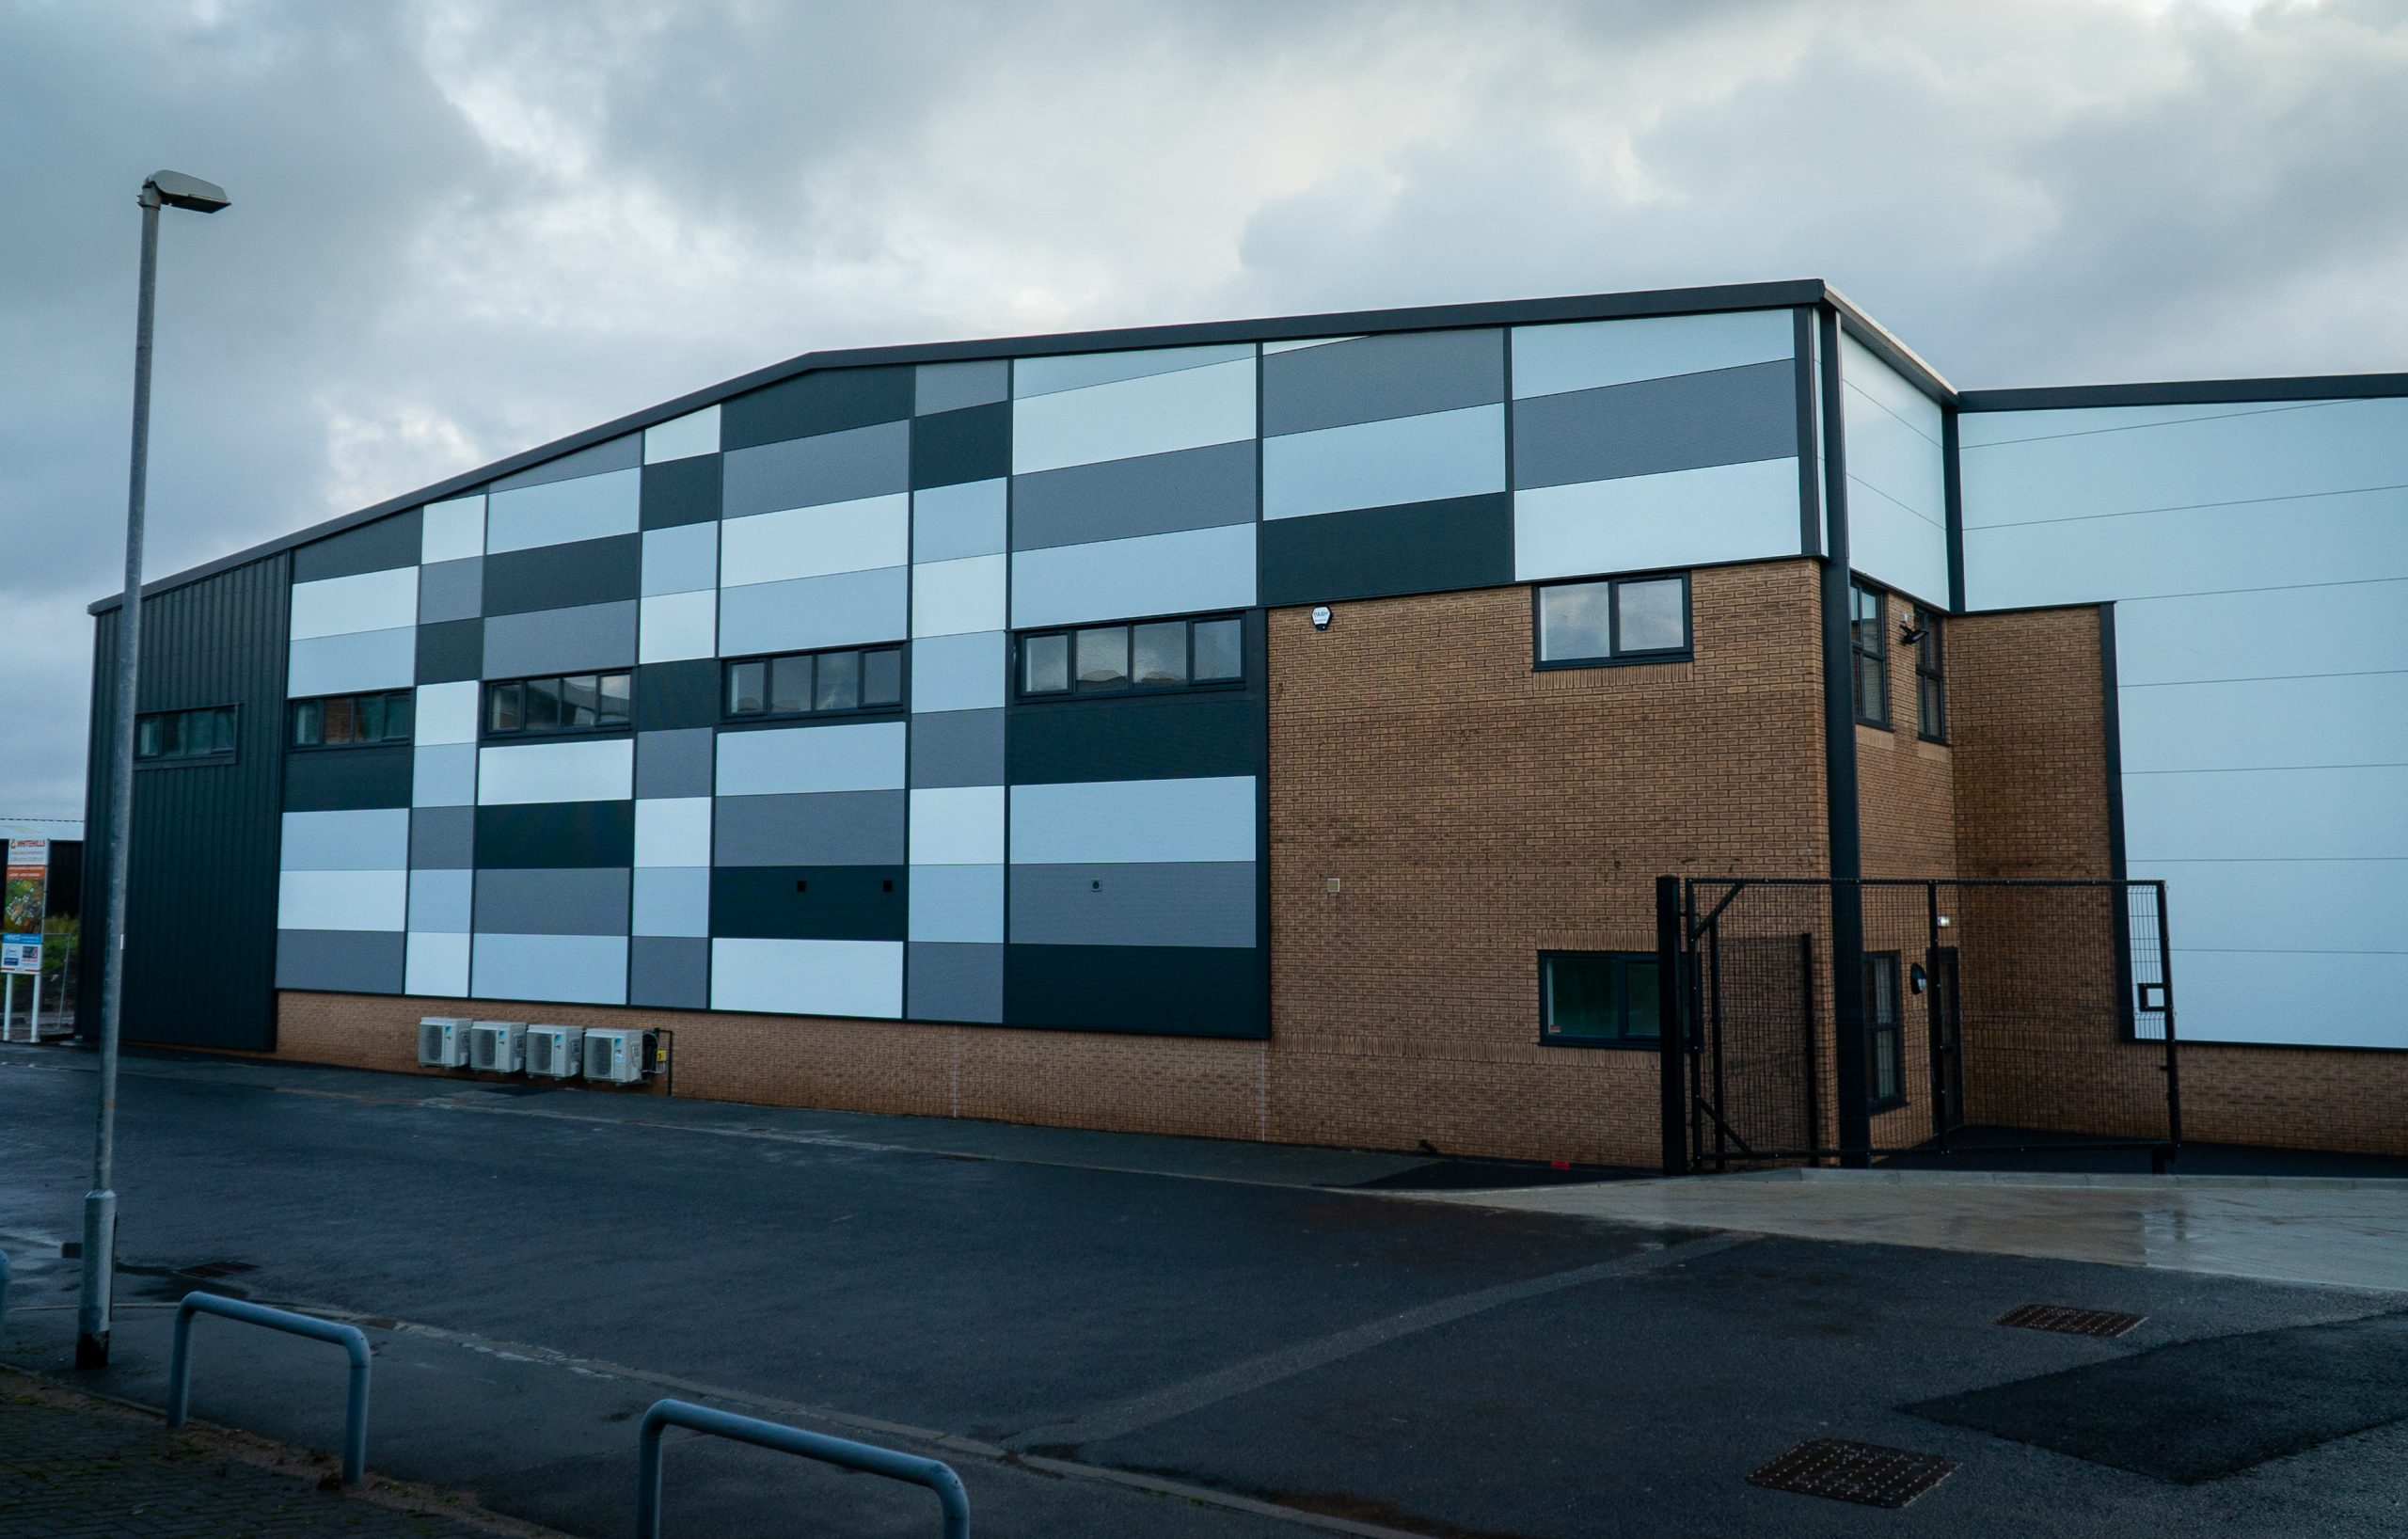 Wareing Buildings completes on latest commercial scheme with Henco International